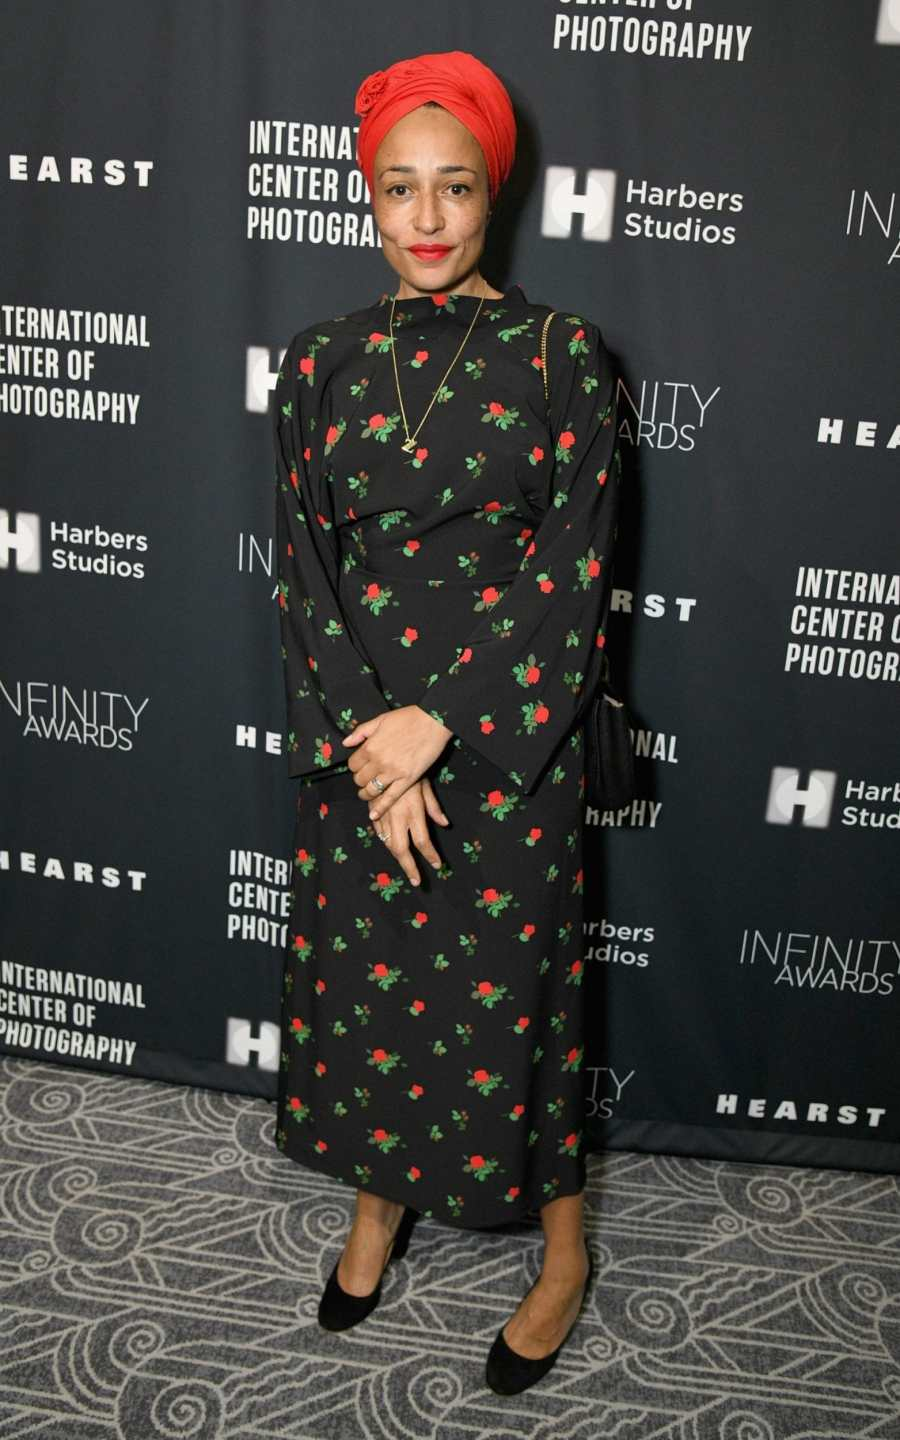 Zadie Smith at The International Center Of Photography's 35th Annual Infinity Awards wearing a red turban and floral dress